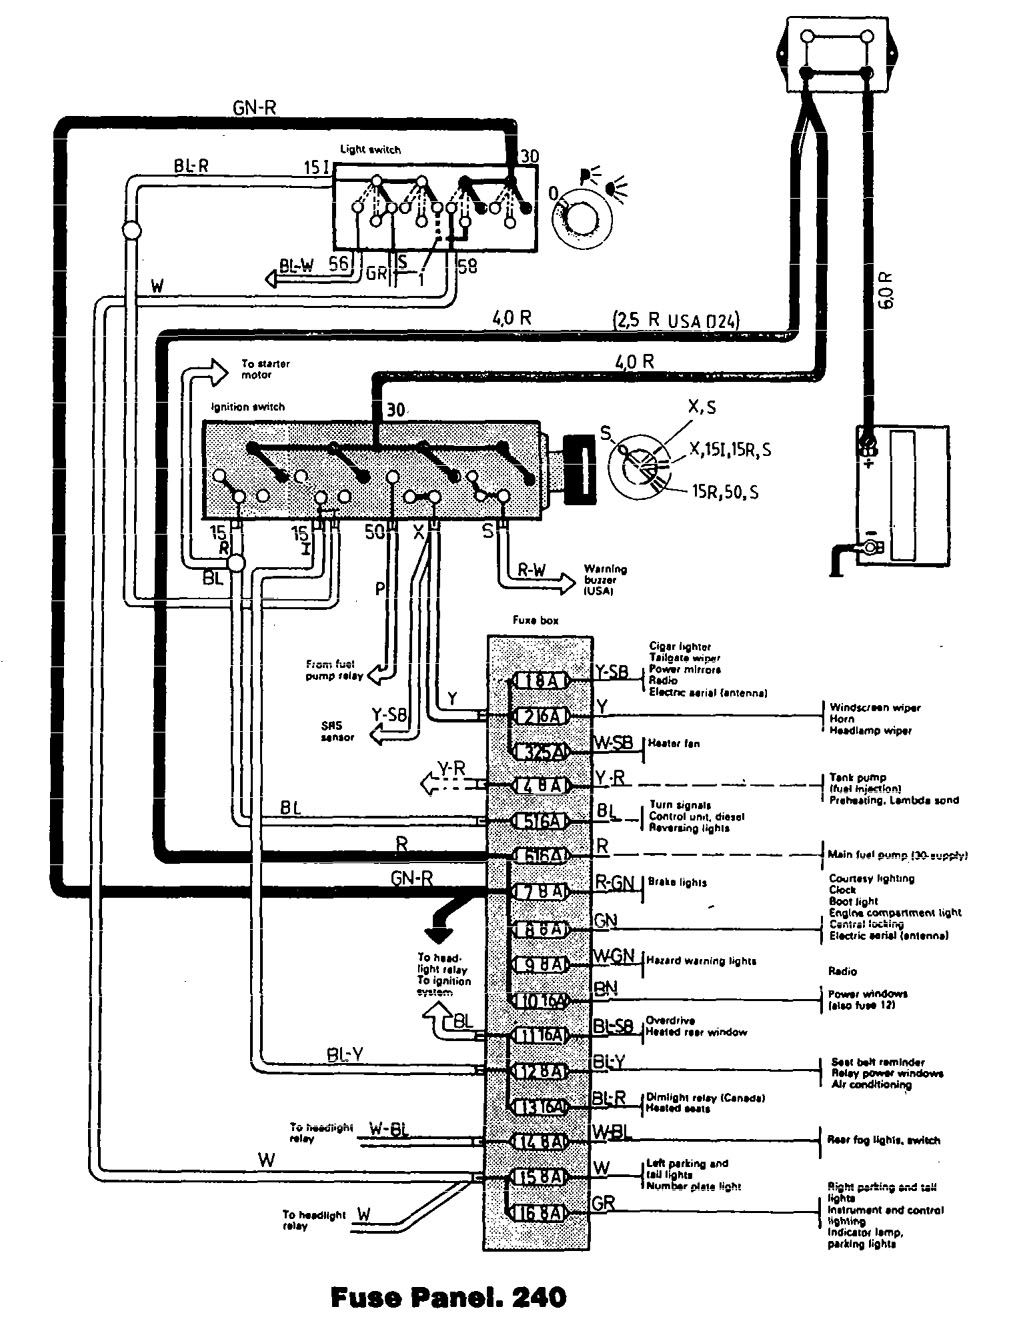 2006 crown victoria fuse panel diagram